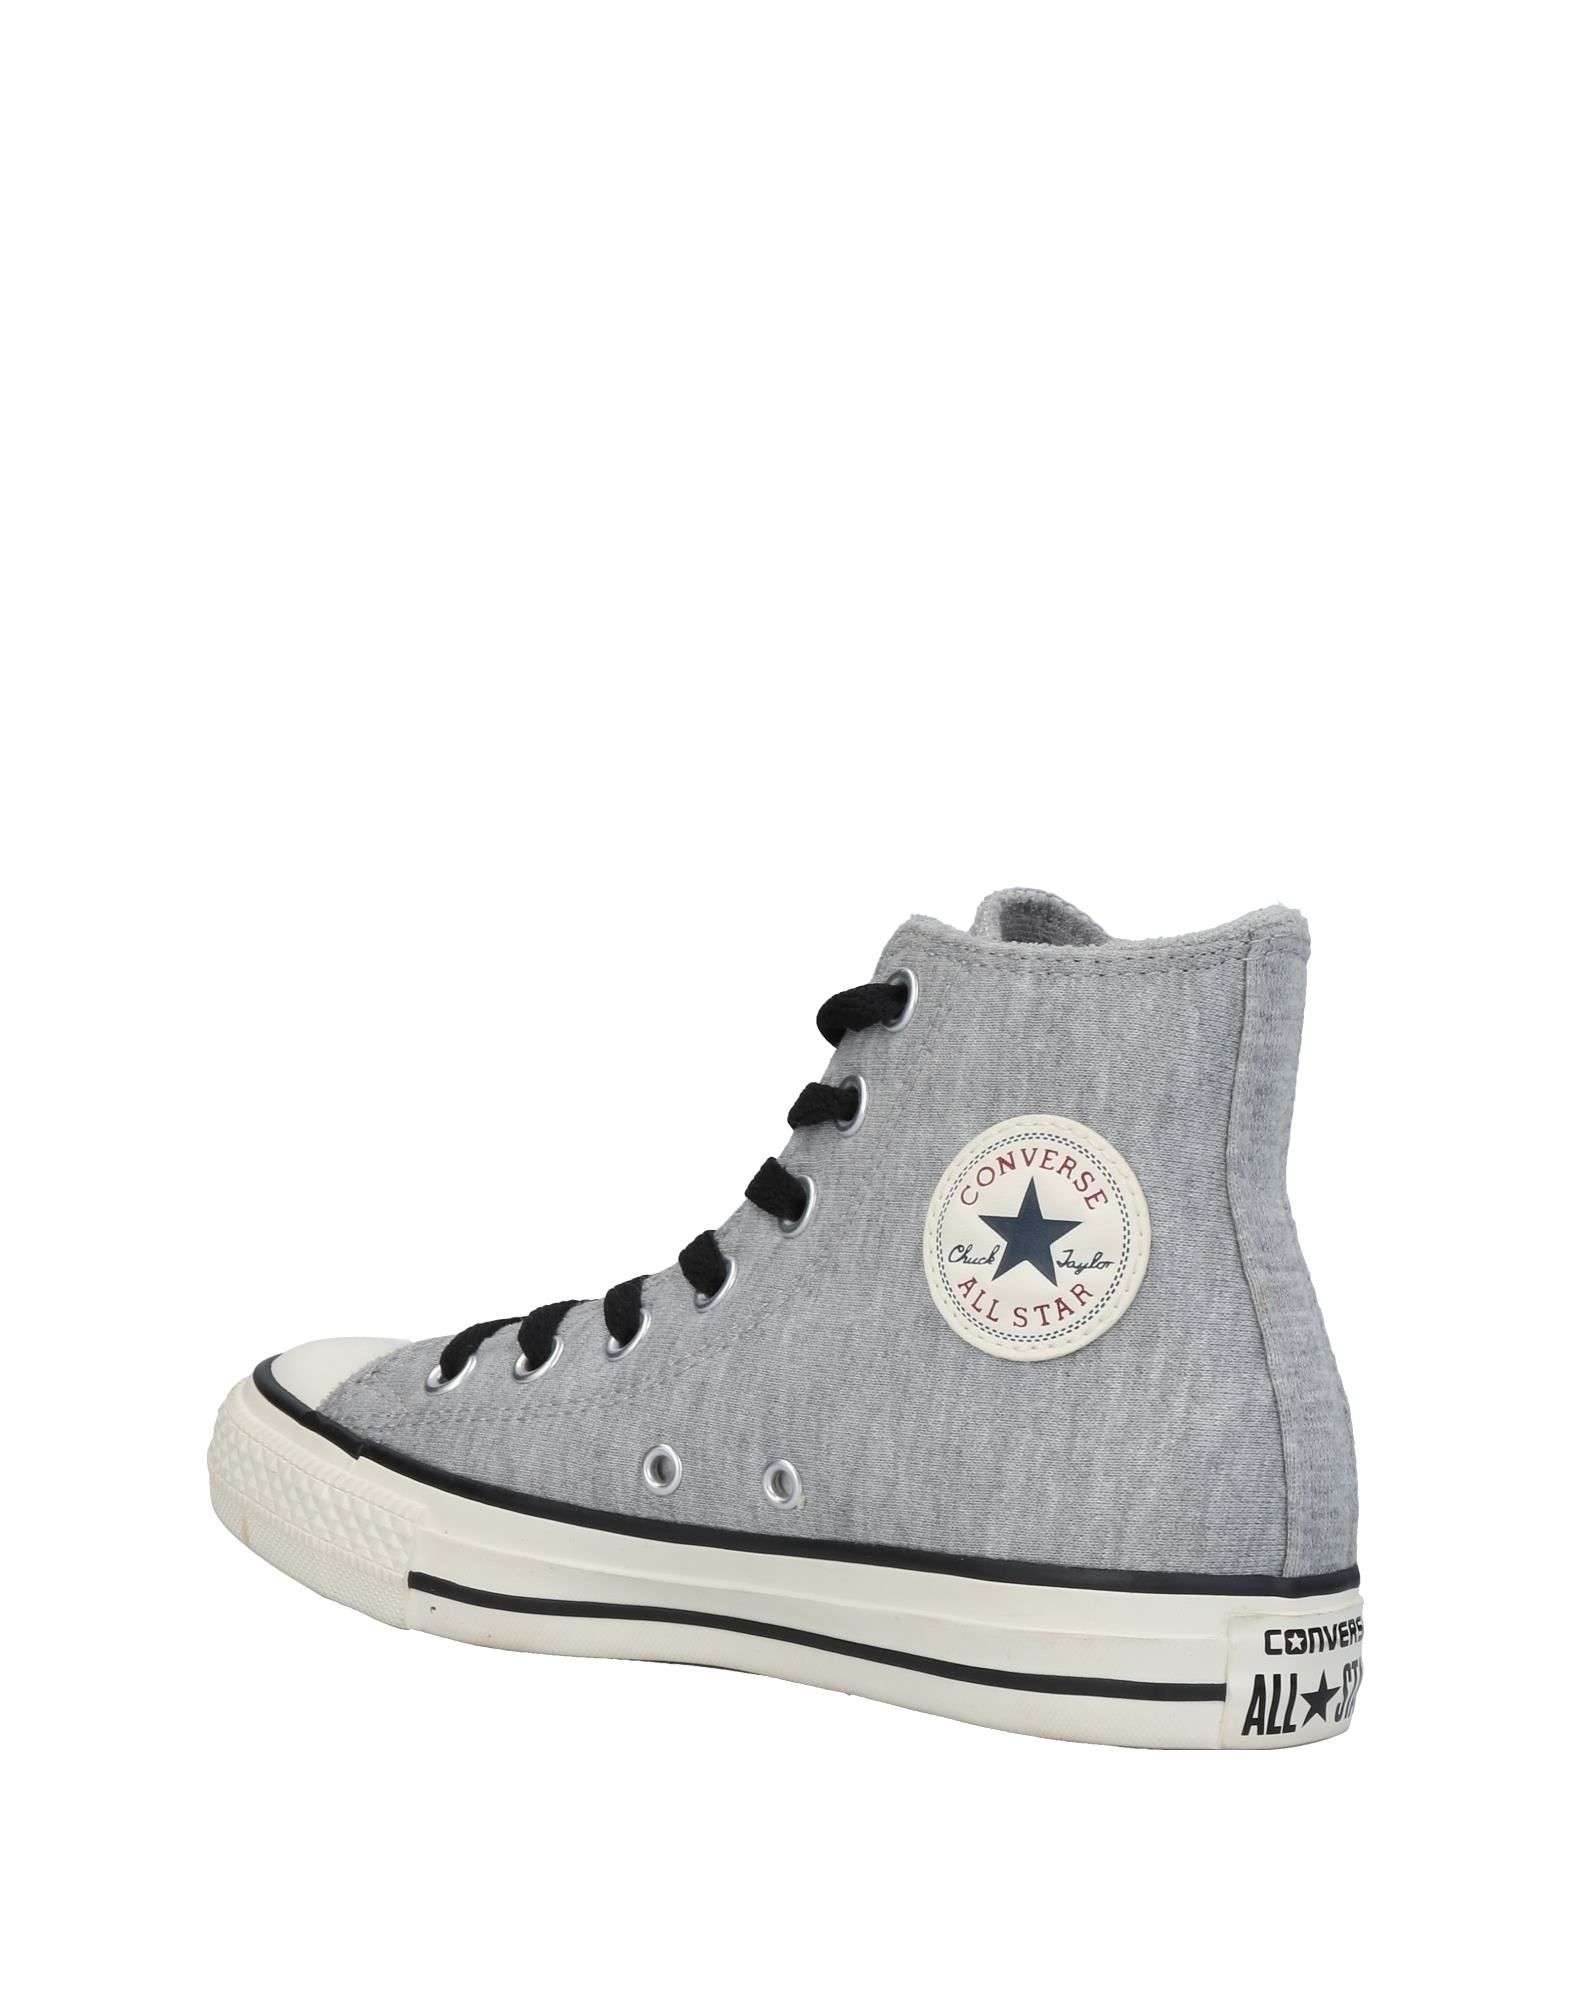 Sneakers Converse All Star Femme - Sneakers Converse All Star sur